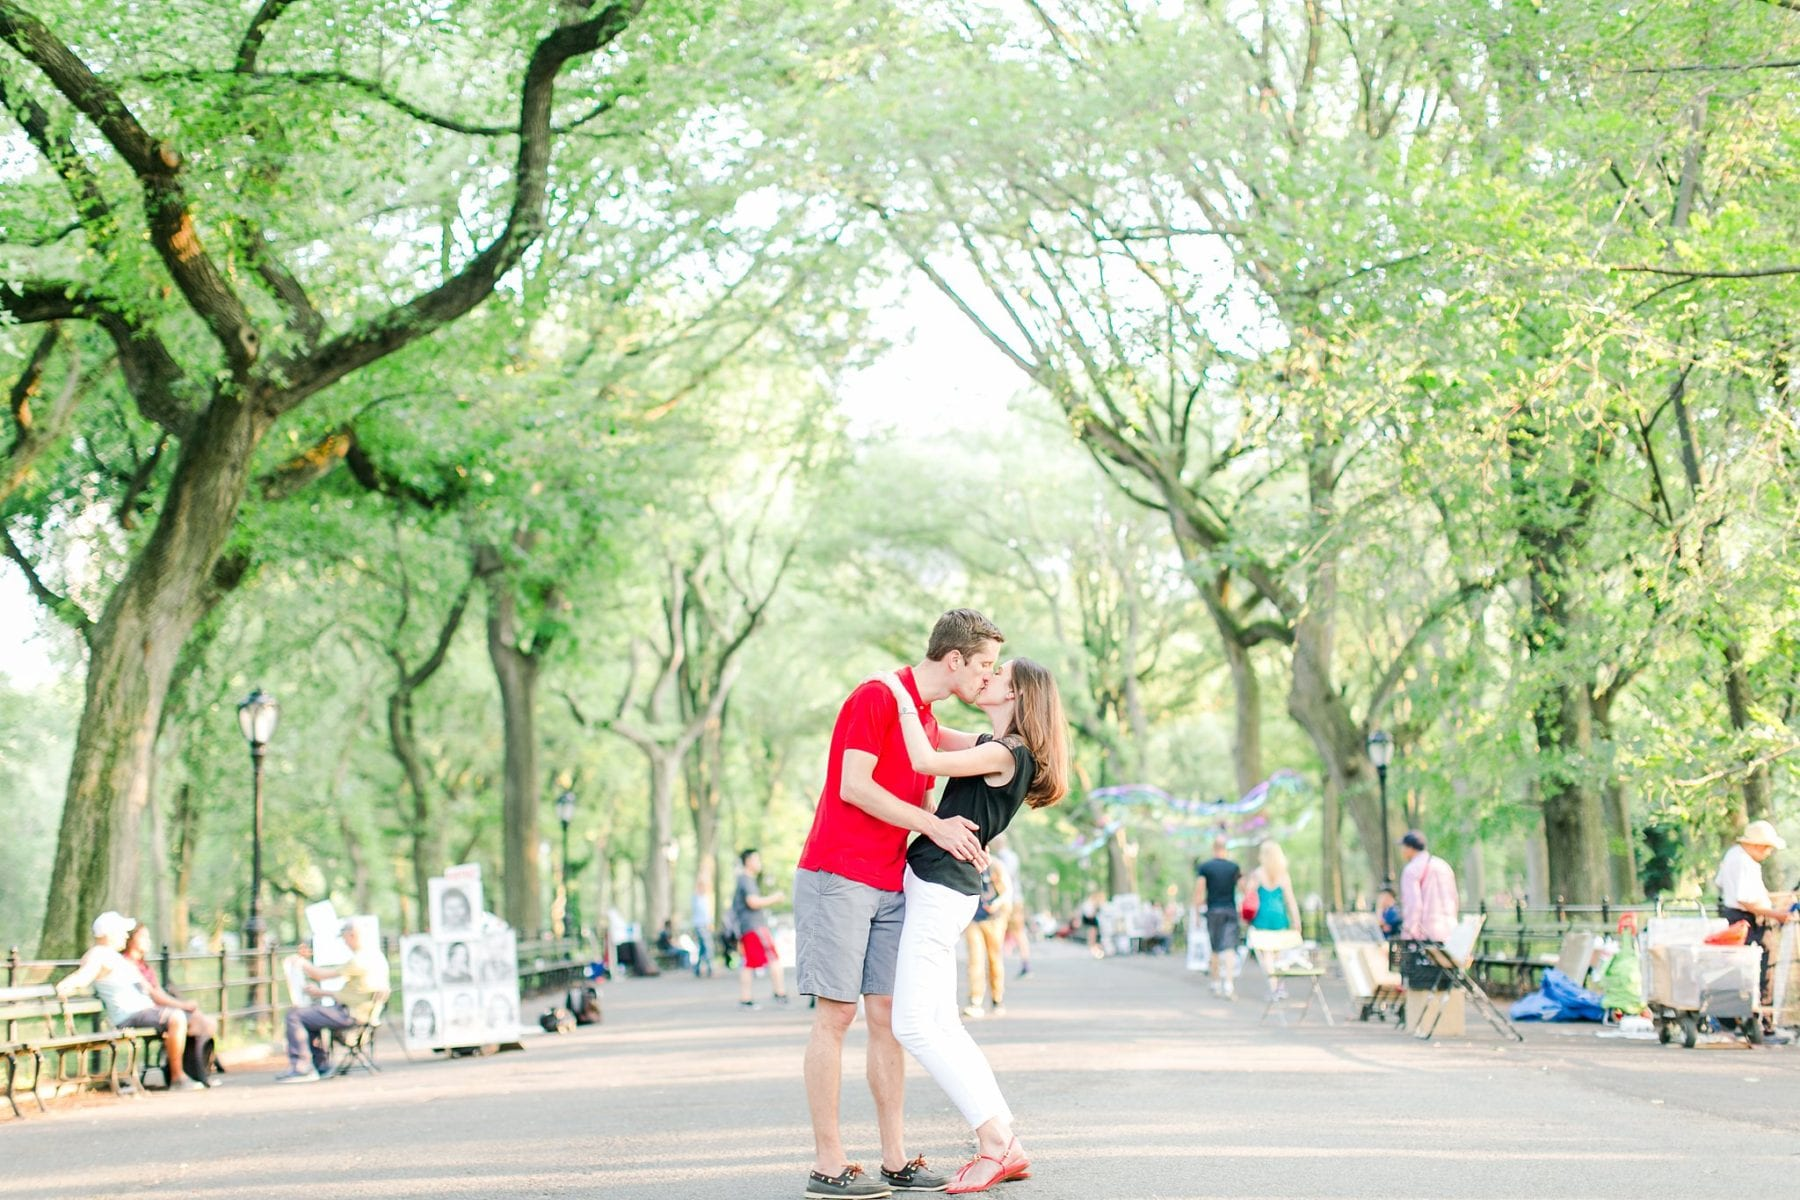 West Village Central Park Engagement Photos NYC Wedding Photographer Megan Kelsey Photography-226.jpg